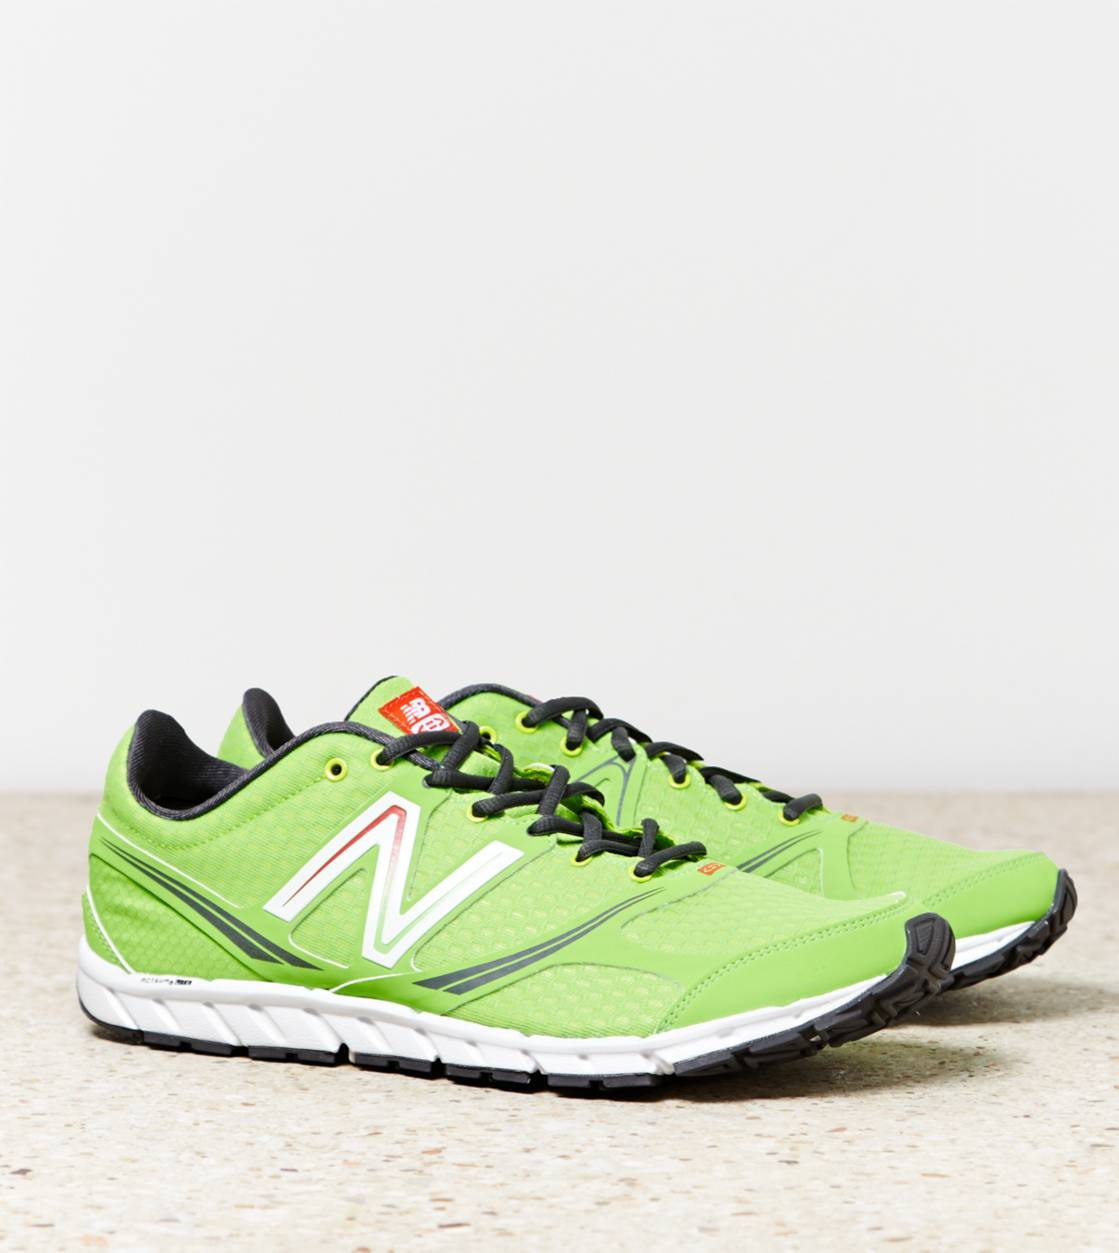 Neon Green New Balance Performance Sneaker